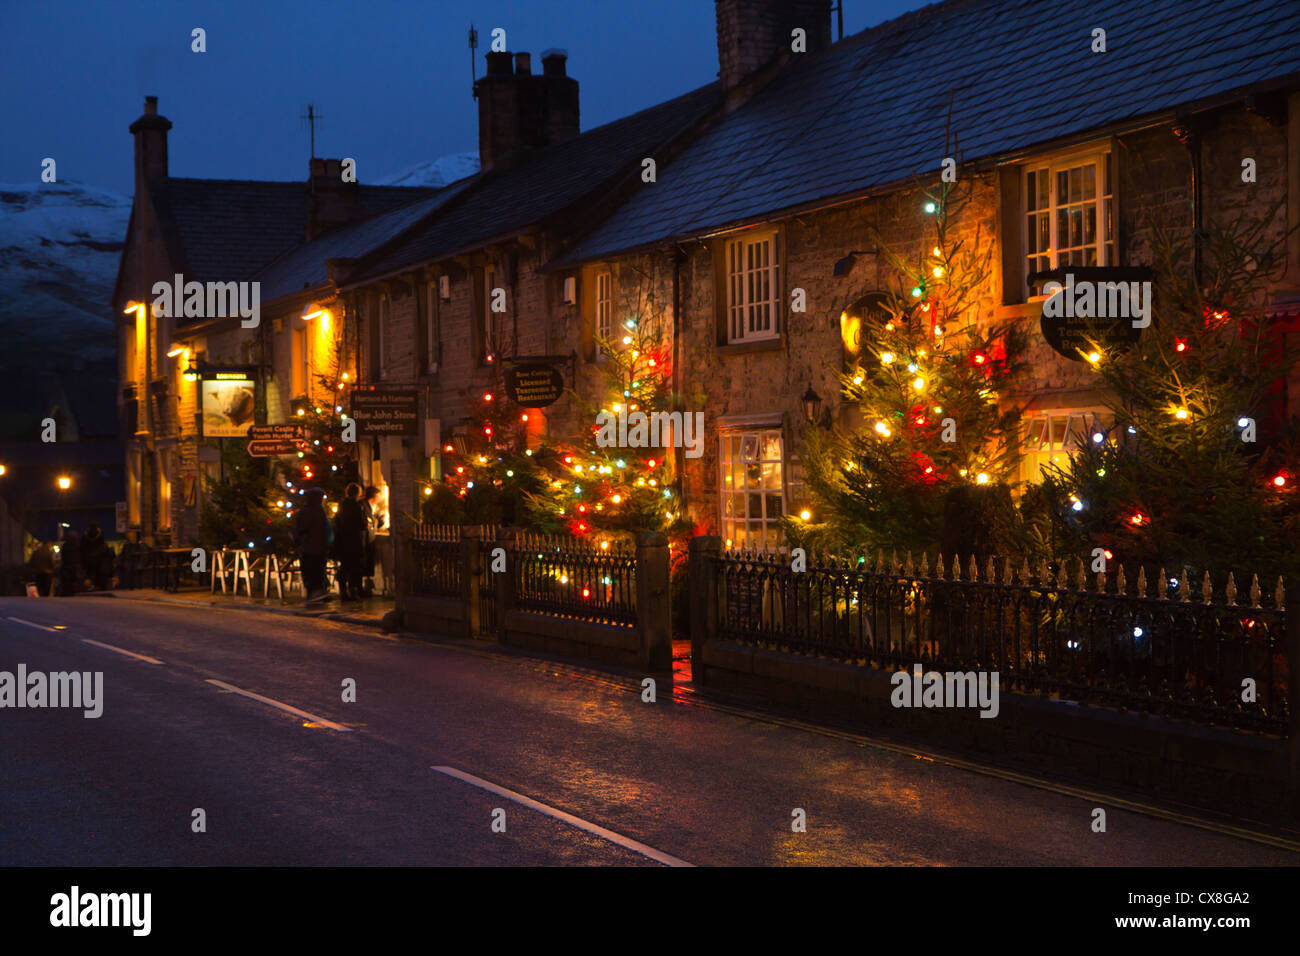 Christmas lights in the high street of the Peak District village of ...